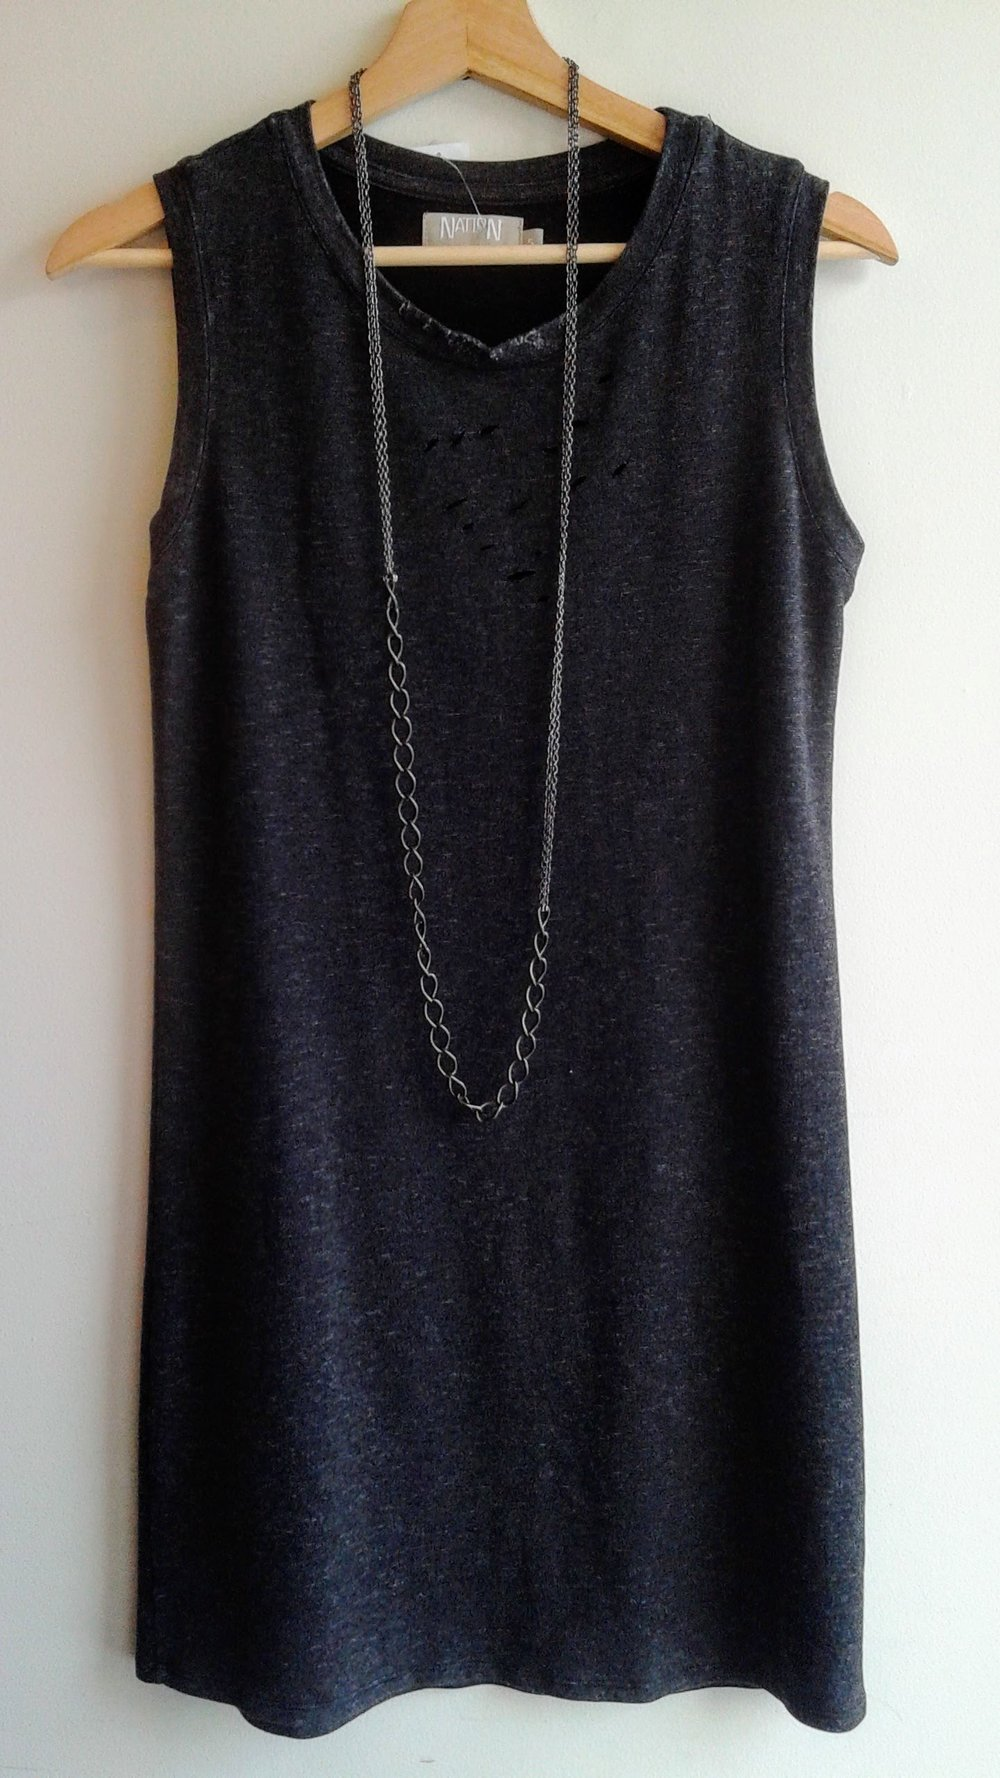 Nation dress; Size S. $26; Necklace, $14